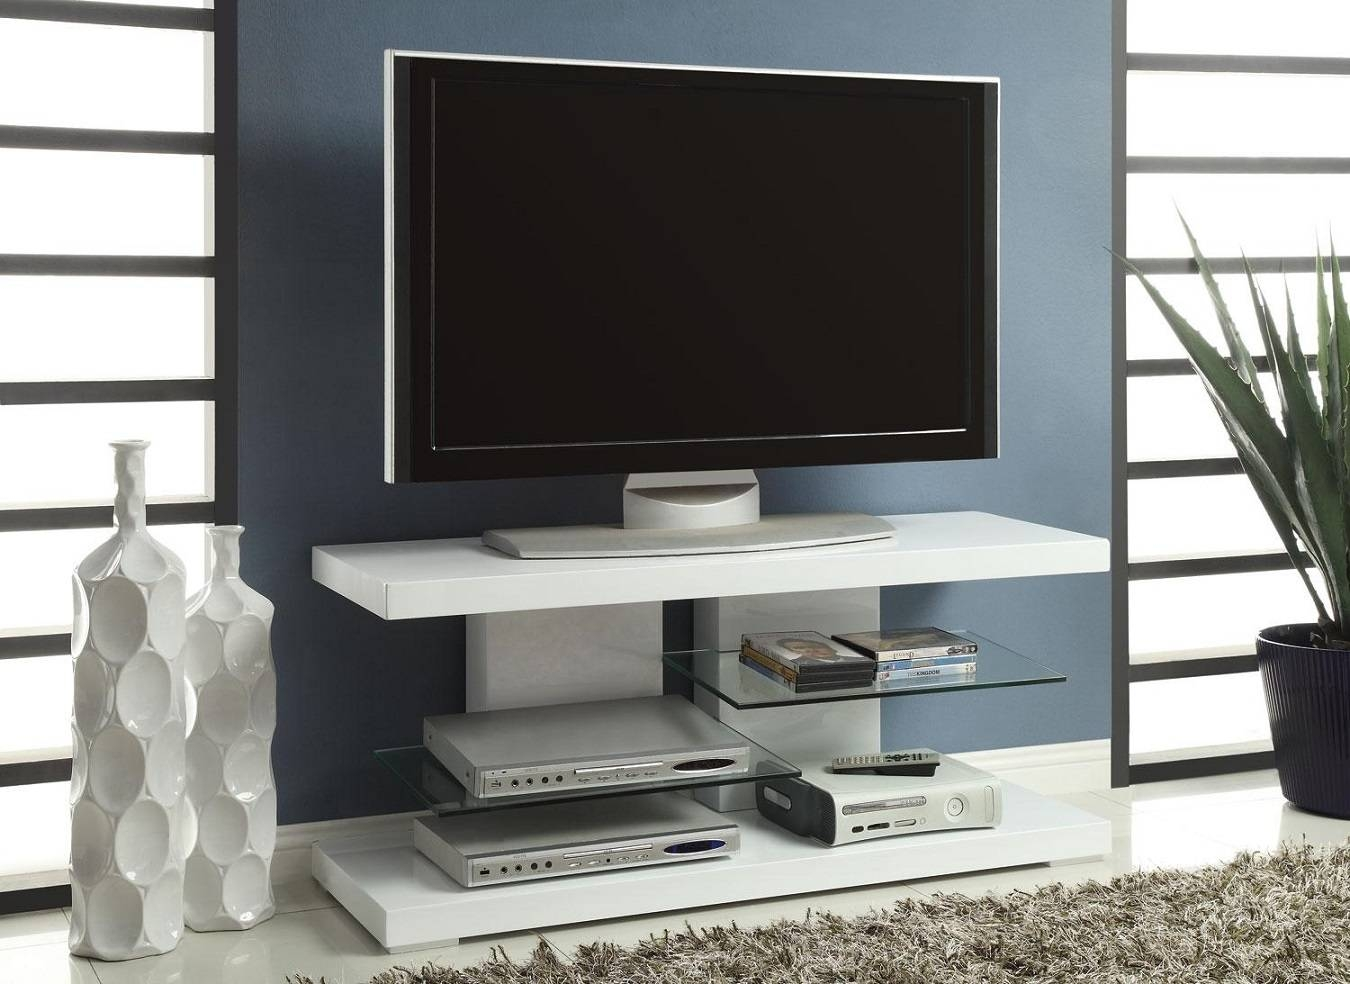 White Painted Plywood Flat Screen Tv Stand With Tempered Glass throughout Contemporary Tv Cabinets For Flat Screens (Image 14 of 15)